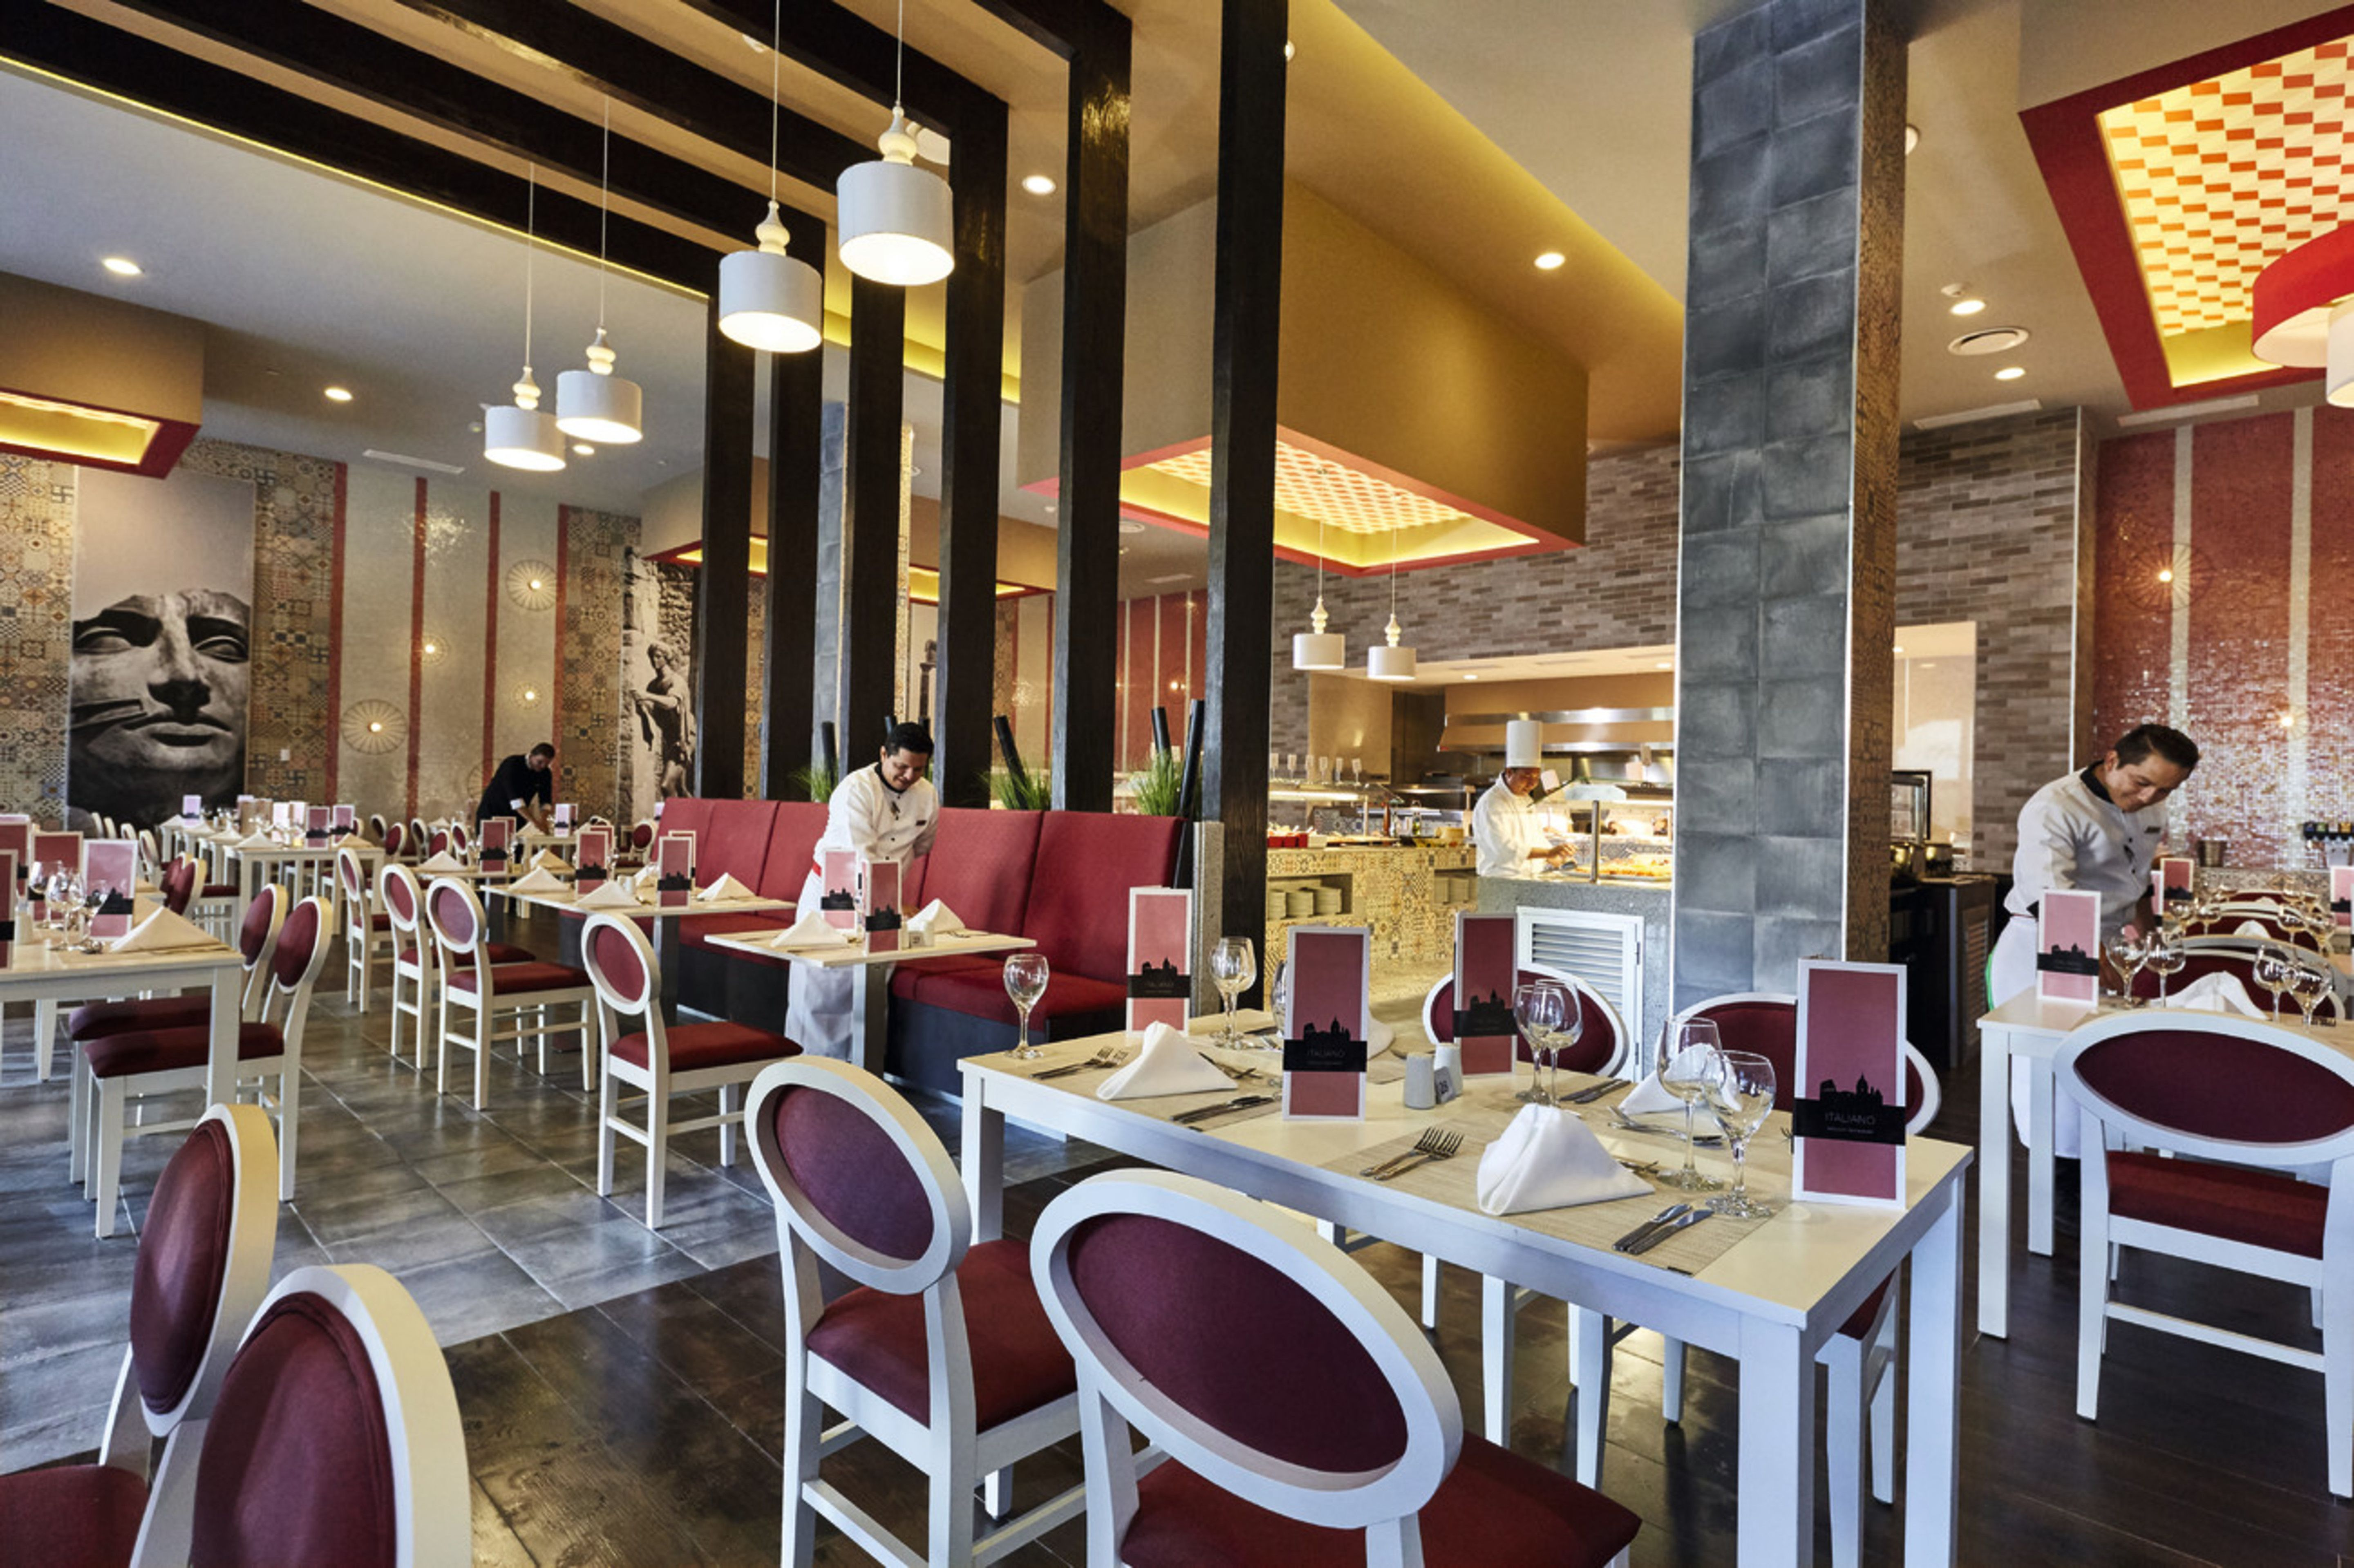 Italian Restaurant at the new hotel Riu Dunamar located in Costa Mujeres, Mexico. #Allinclusive #Mexico